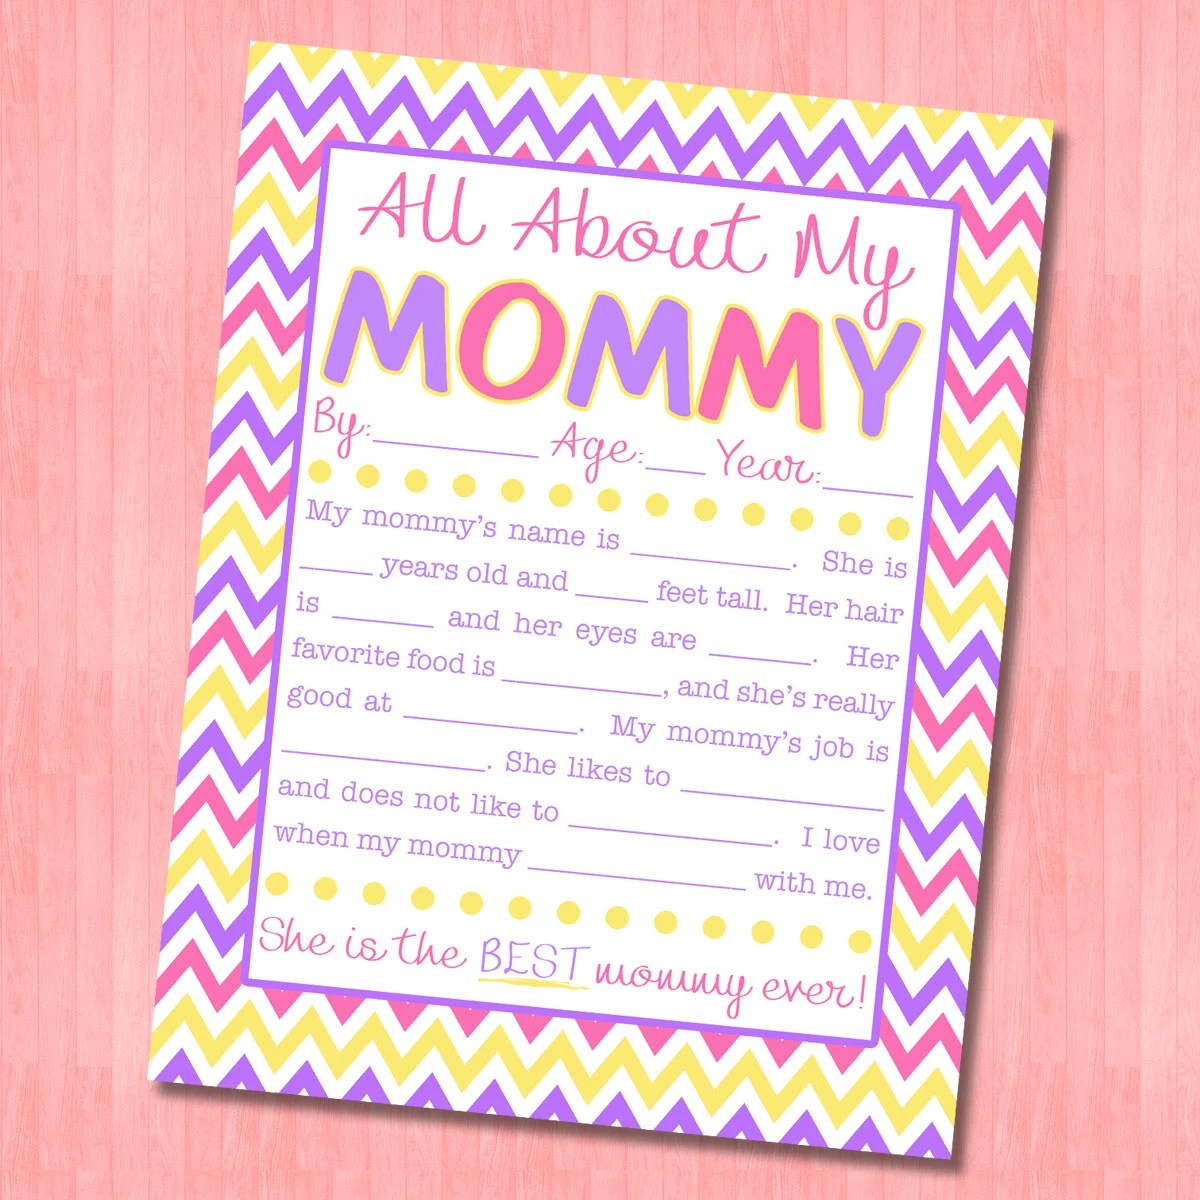 photograph relating to Free Printable Mothers Day Crafts called Cost-free Printable Moms Working day Coloring Web page Card (Slash Information